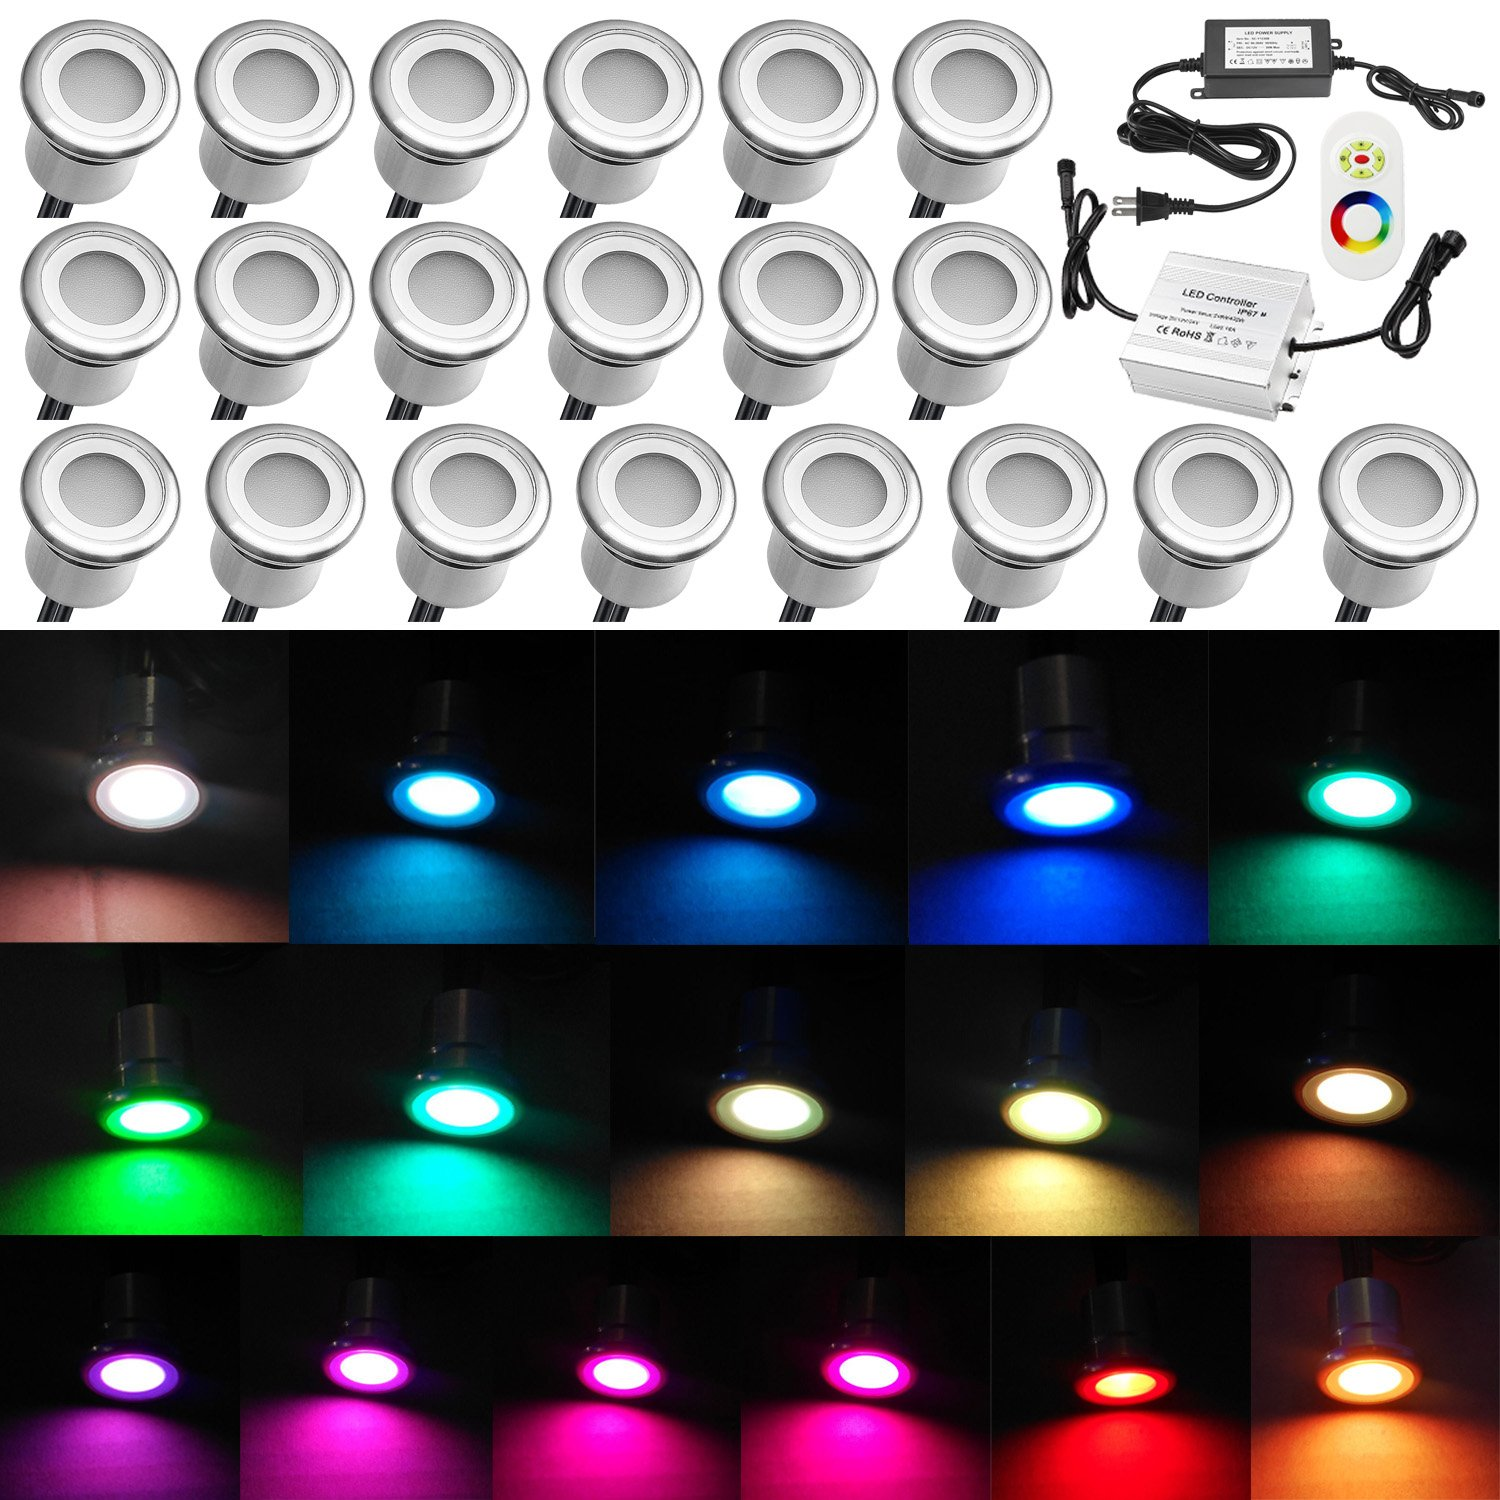 Low Voltage Deck Lighting, QACA 20pcs 0.3W~0.6W Multi-Color RGB LED Deck Lights Kit 1-1/10'' Stainless Steel Recessed Wood Outdoor Yard Garden Decoration Lamp Patio Stairs Landscape Step Lighting